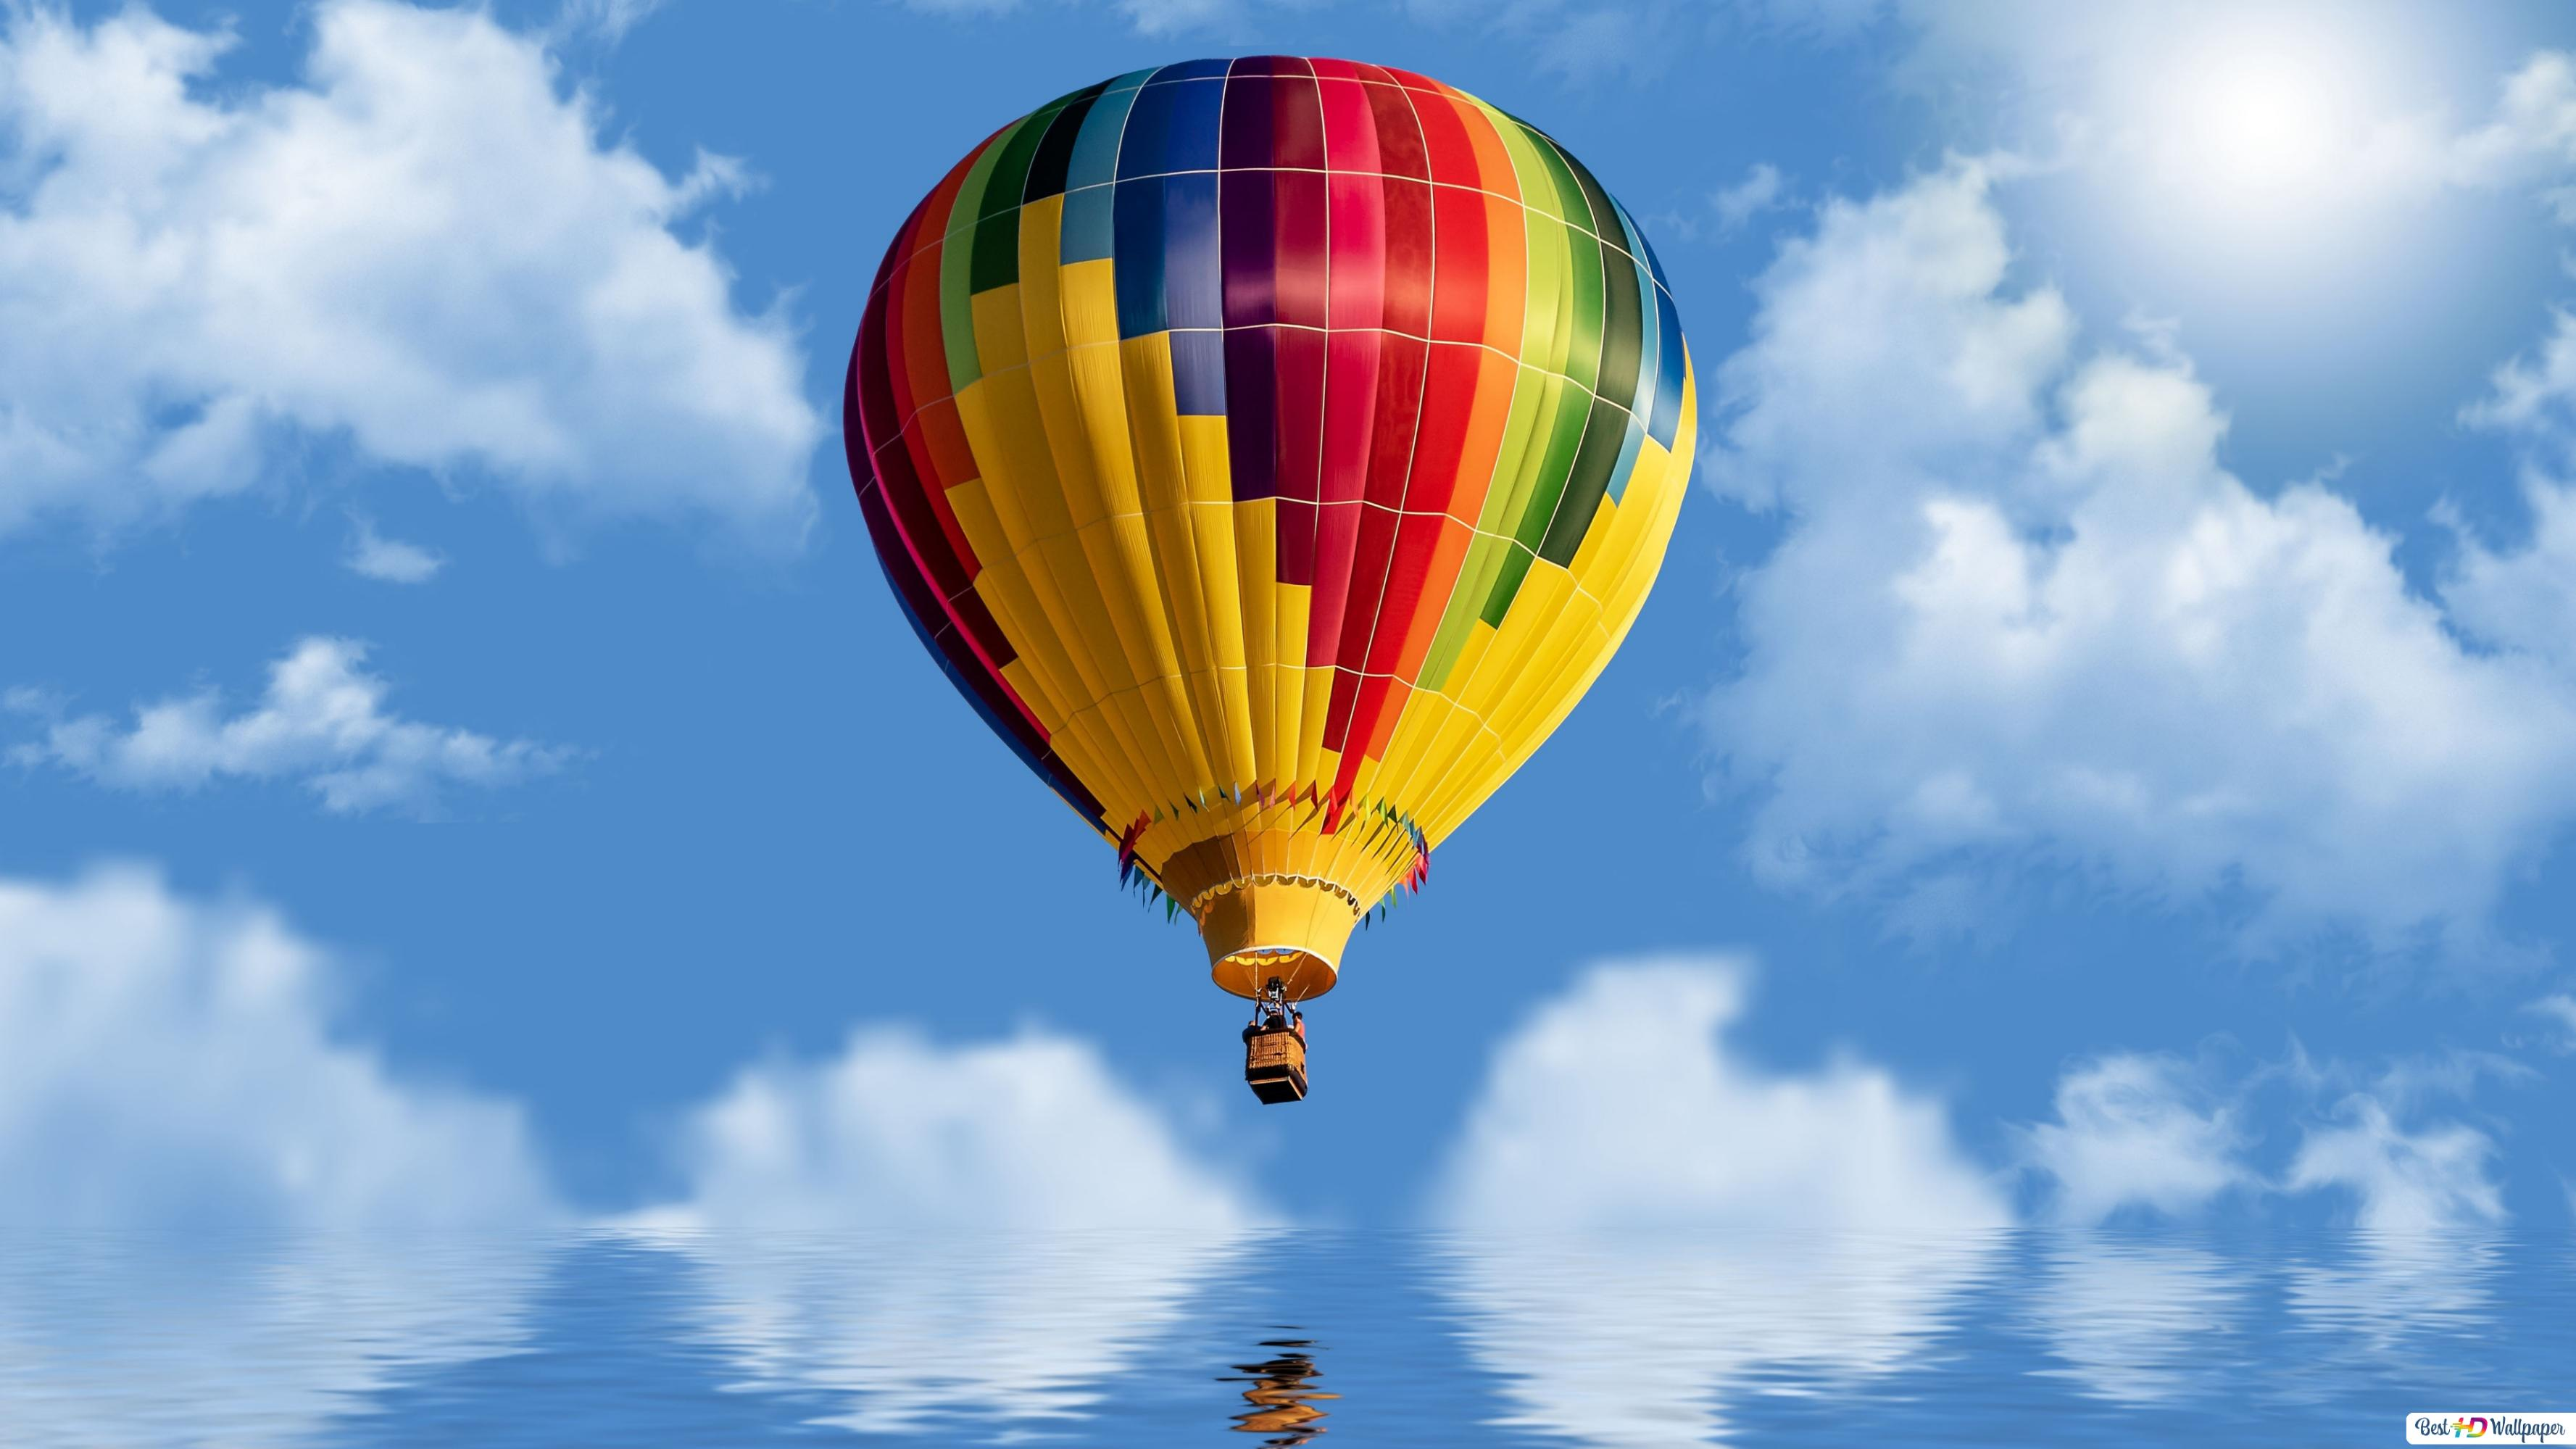 Colorful Hot Air Balloon Hd Wallpaper Download